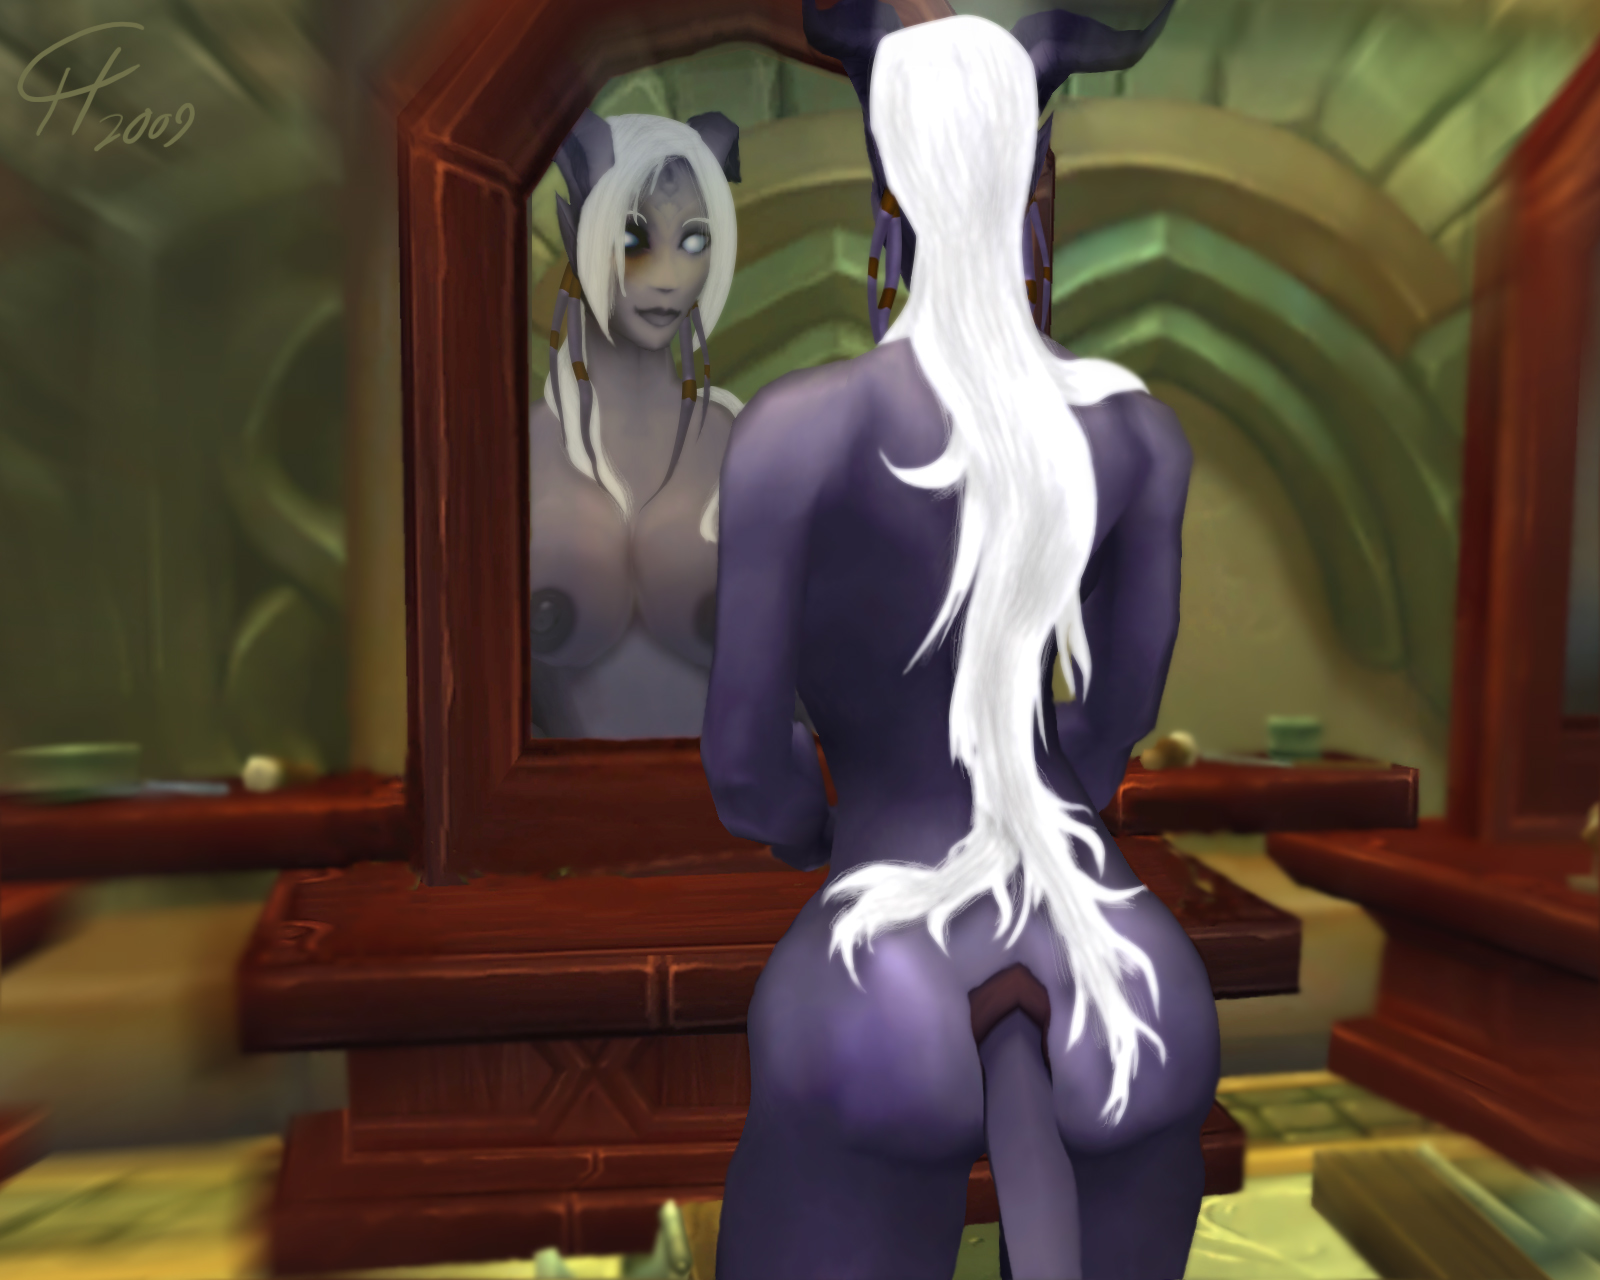 Blood elf porncraft dailymotion nude photos